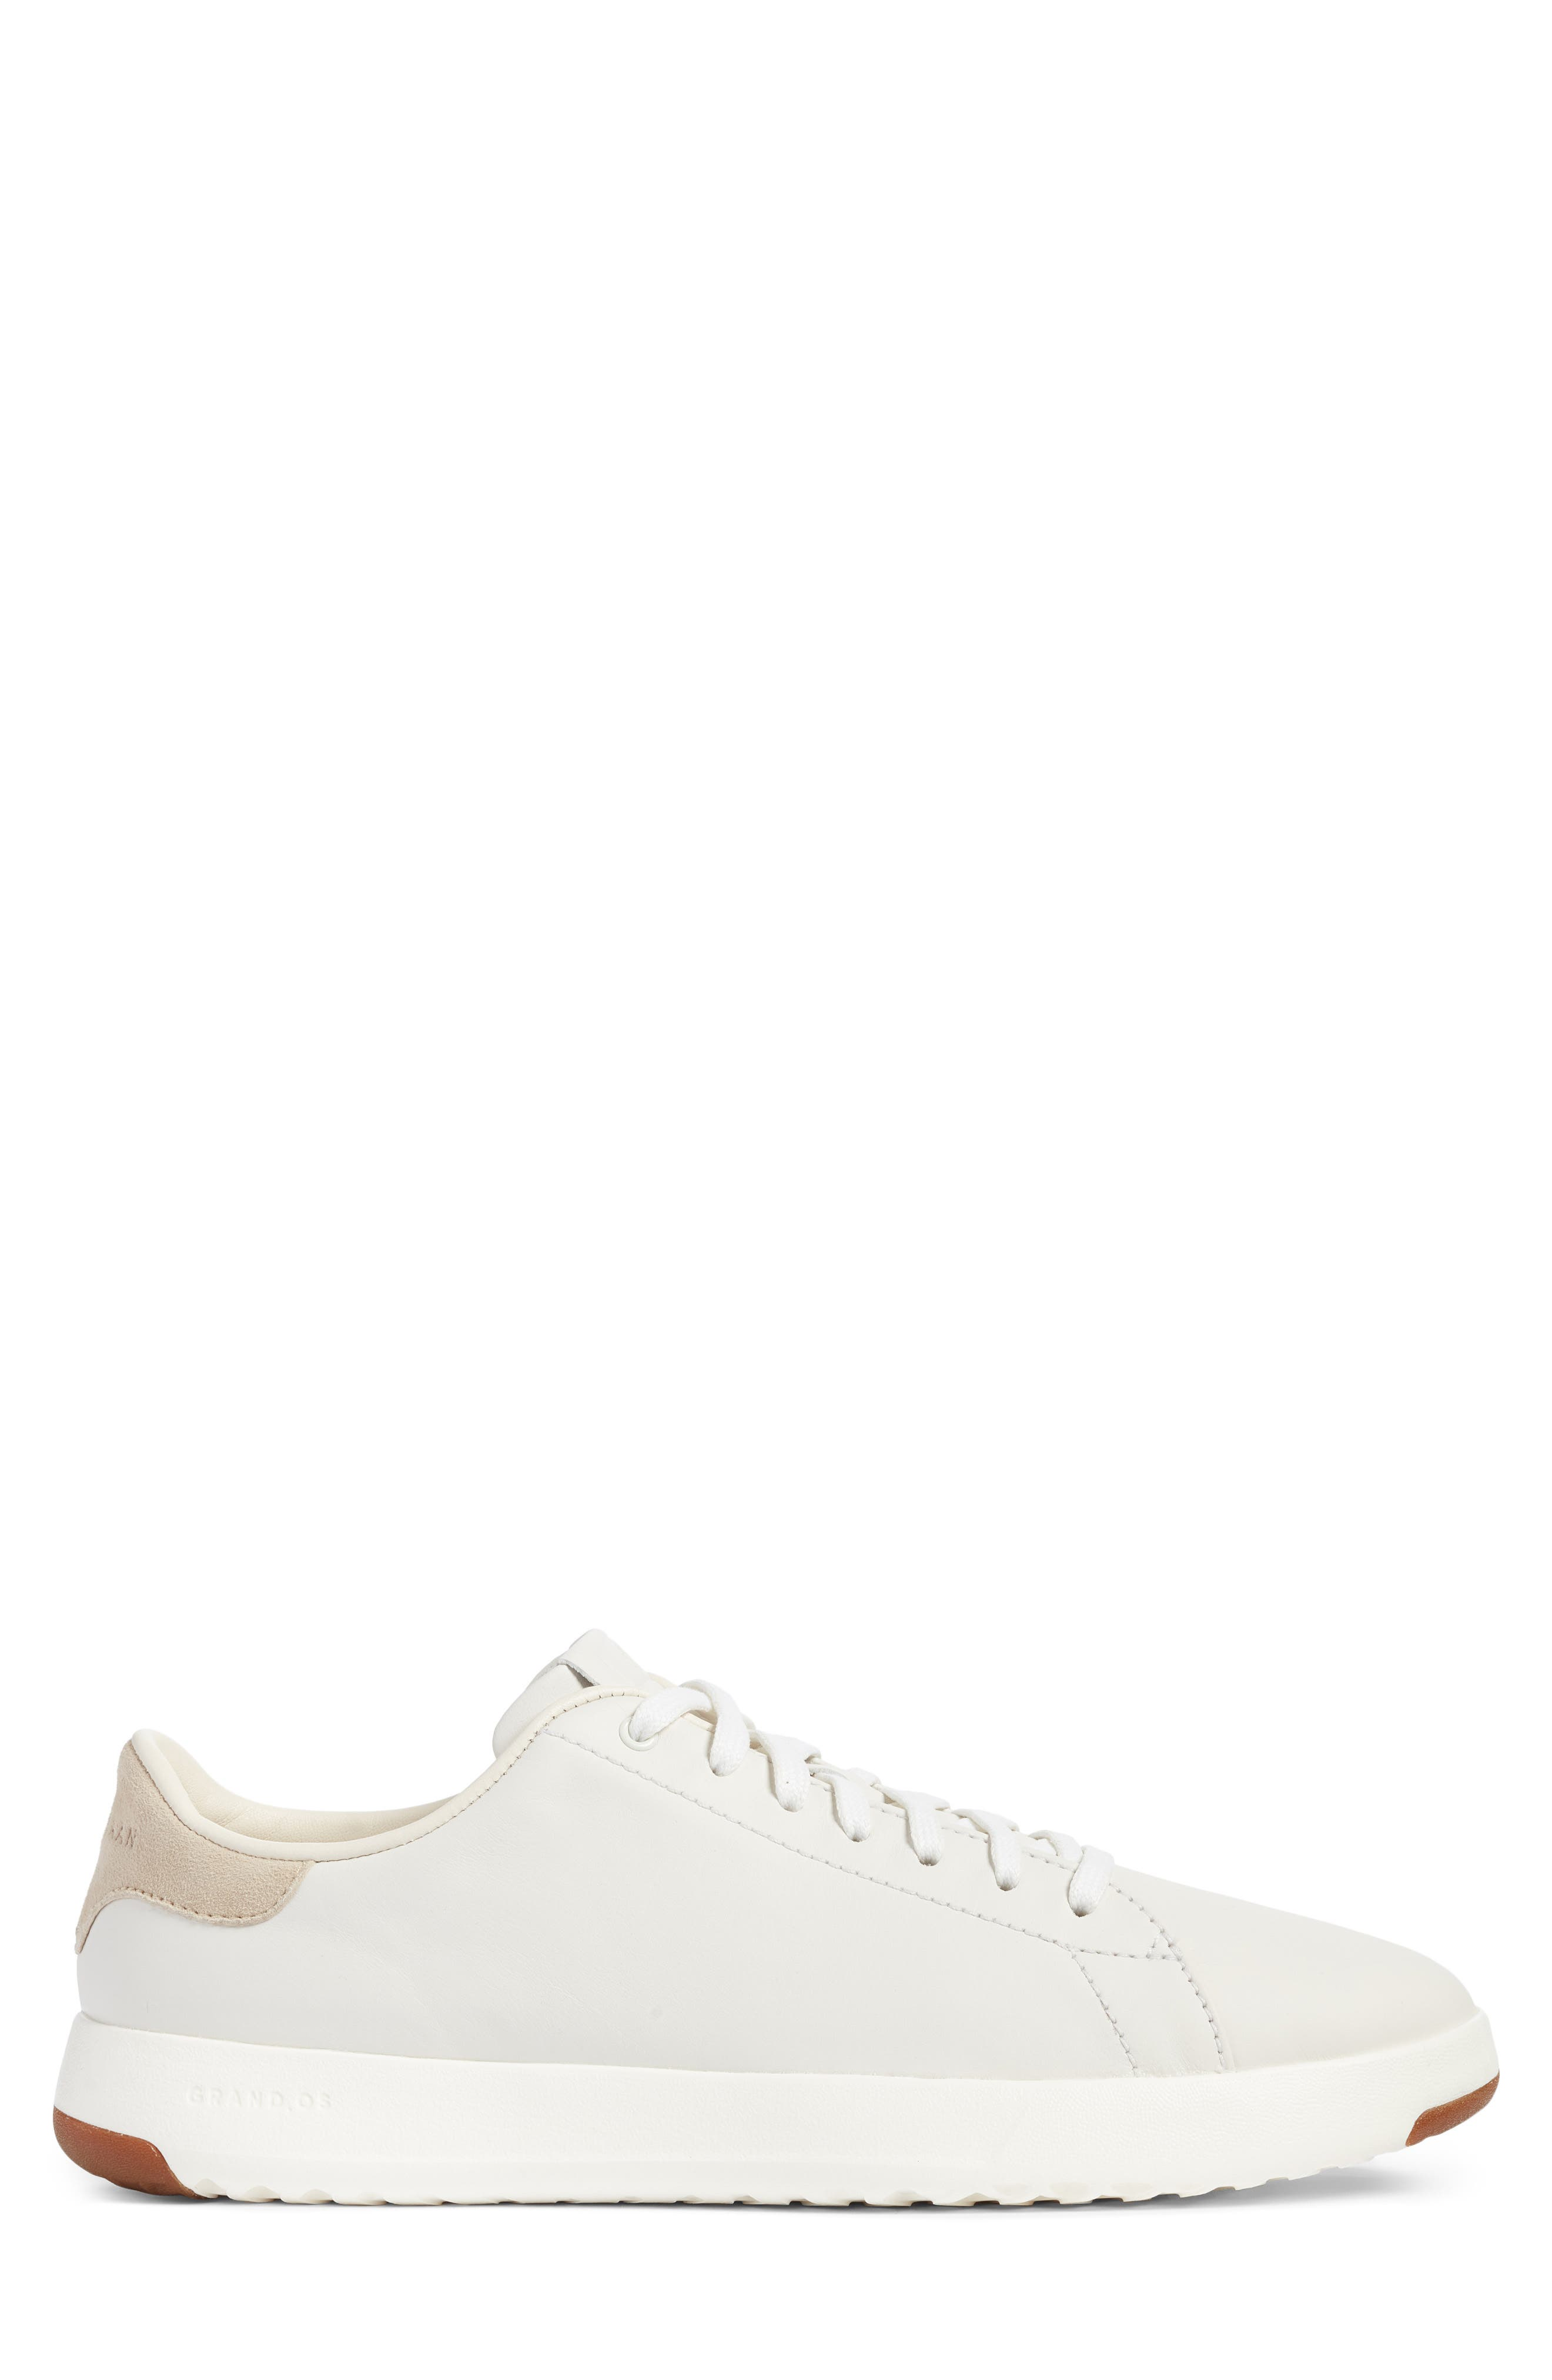 GrandPro Tennis Sneaker,                             Alternate thumbnail 3, color,                             WHITE